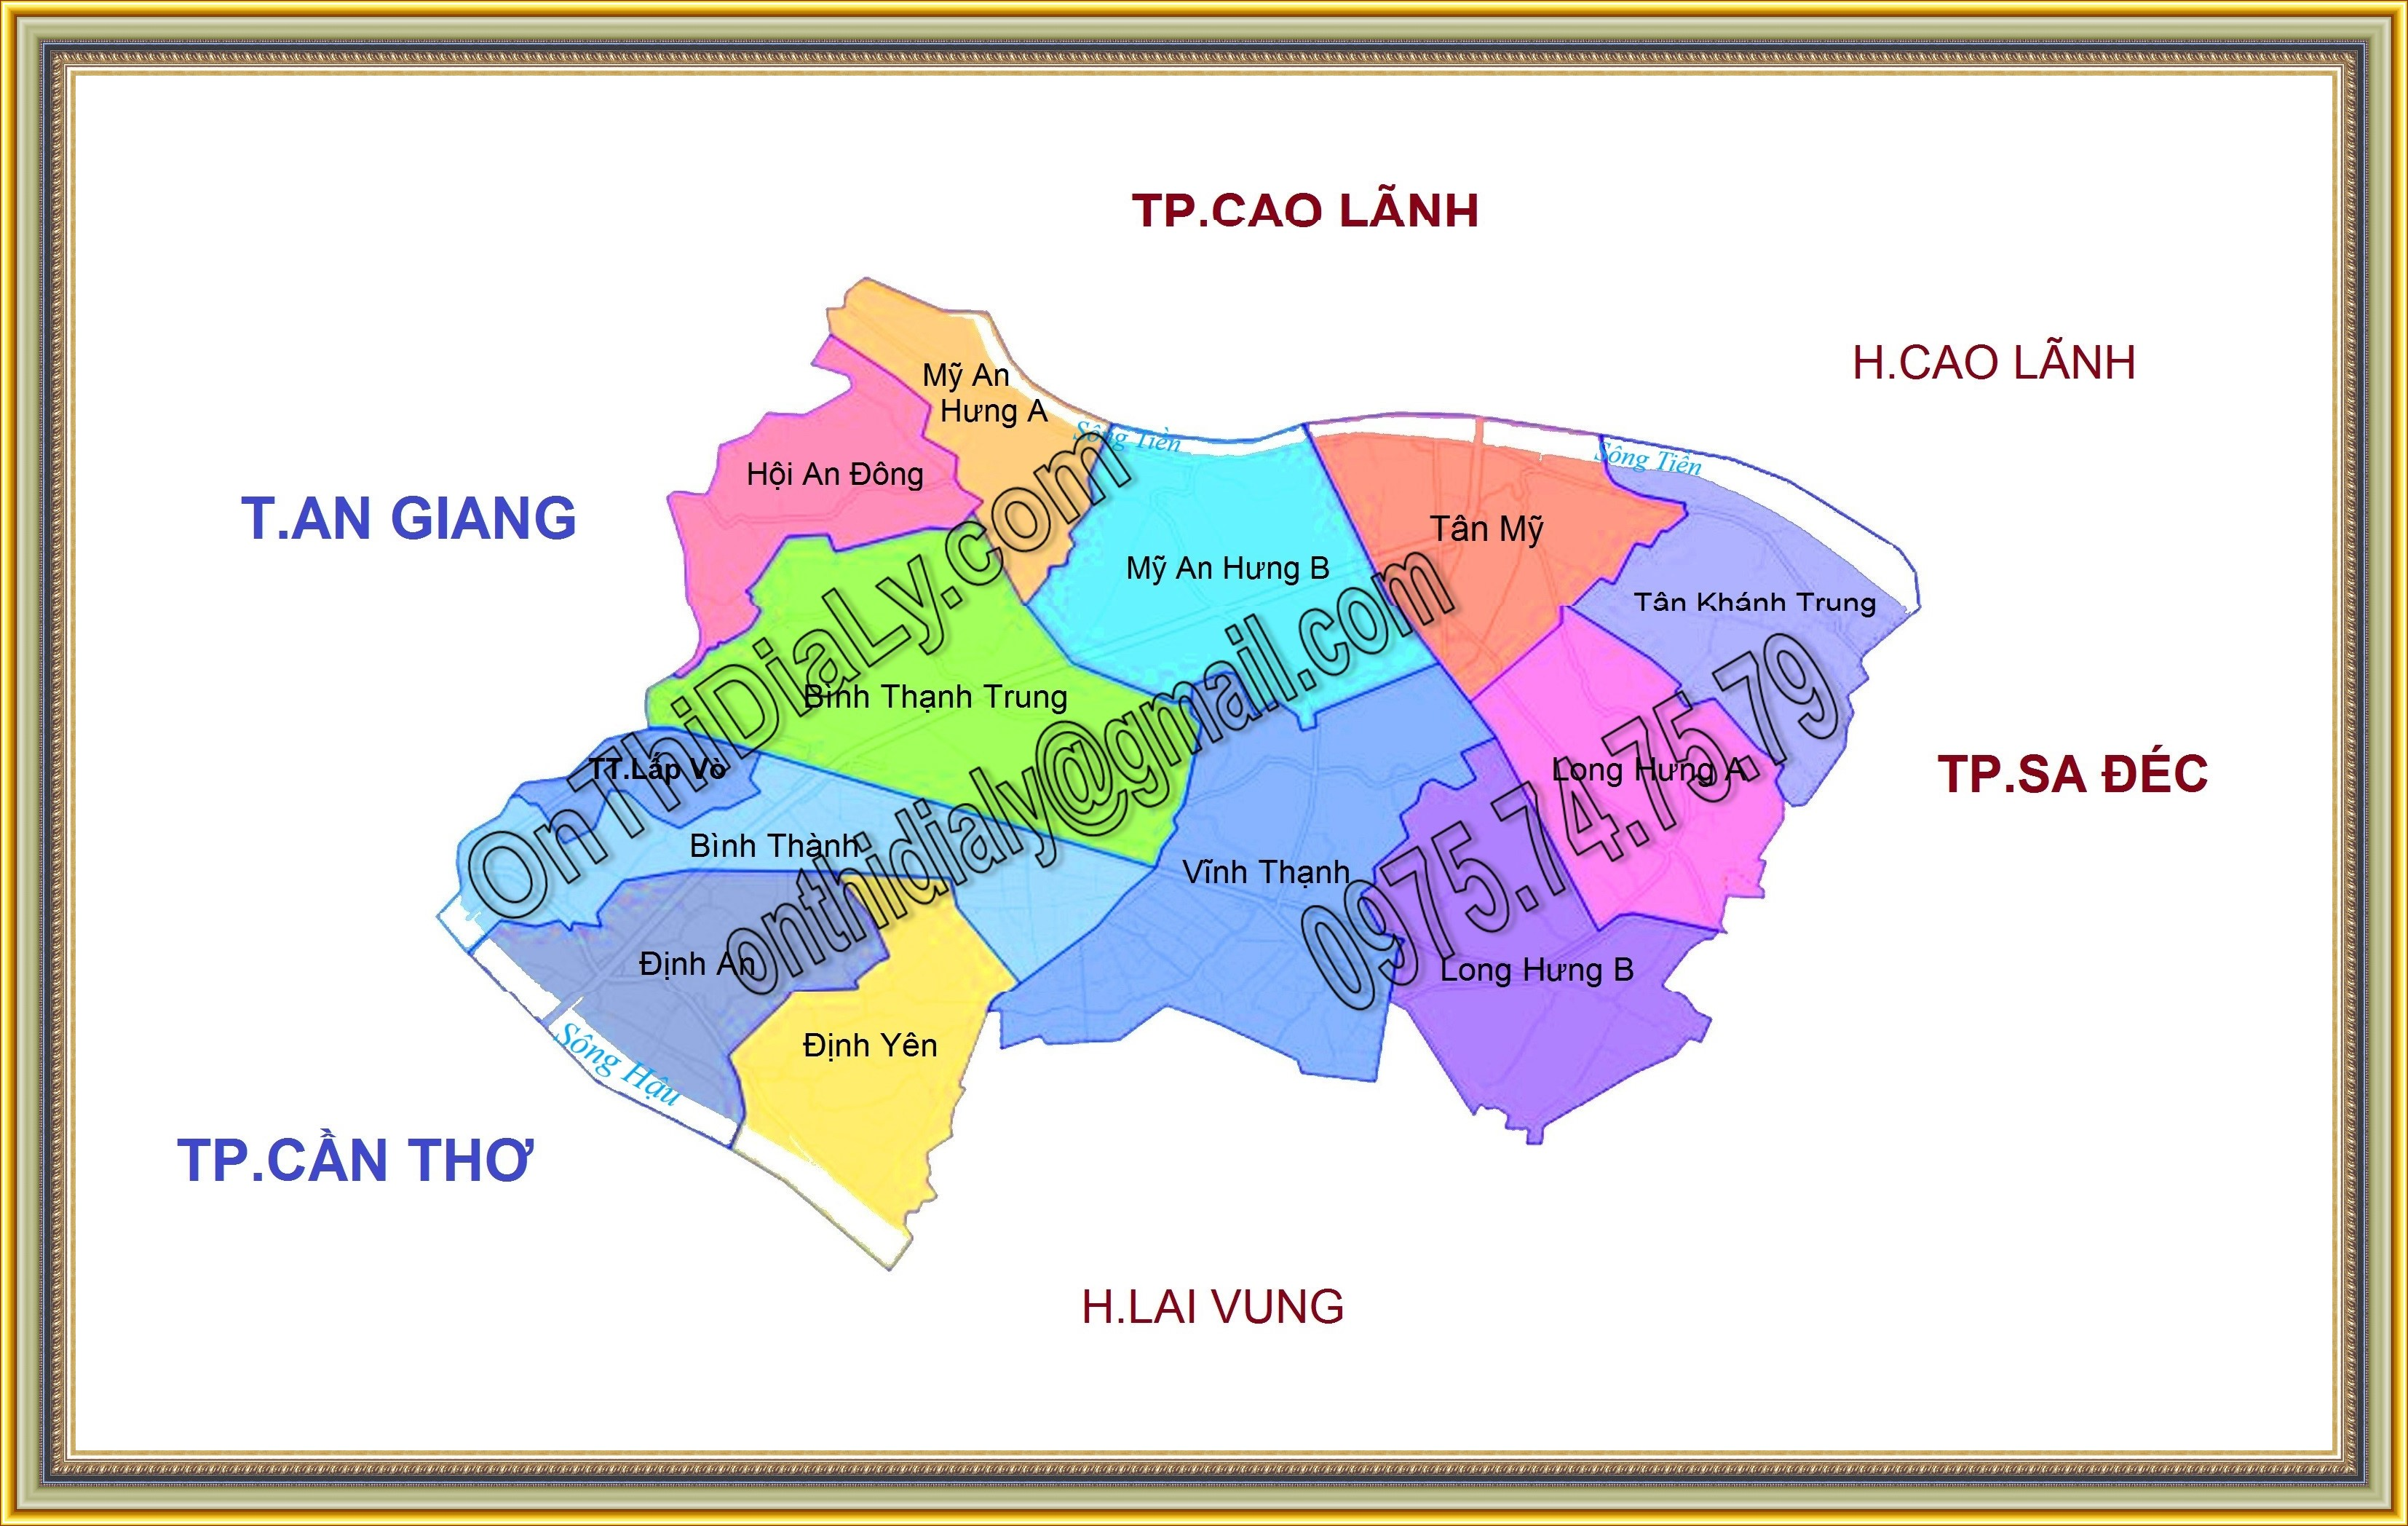 Lap Vo - Dong Thap 5